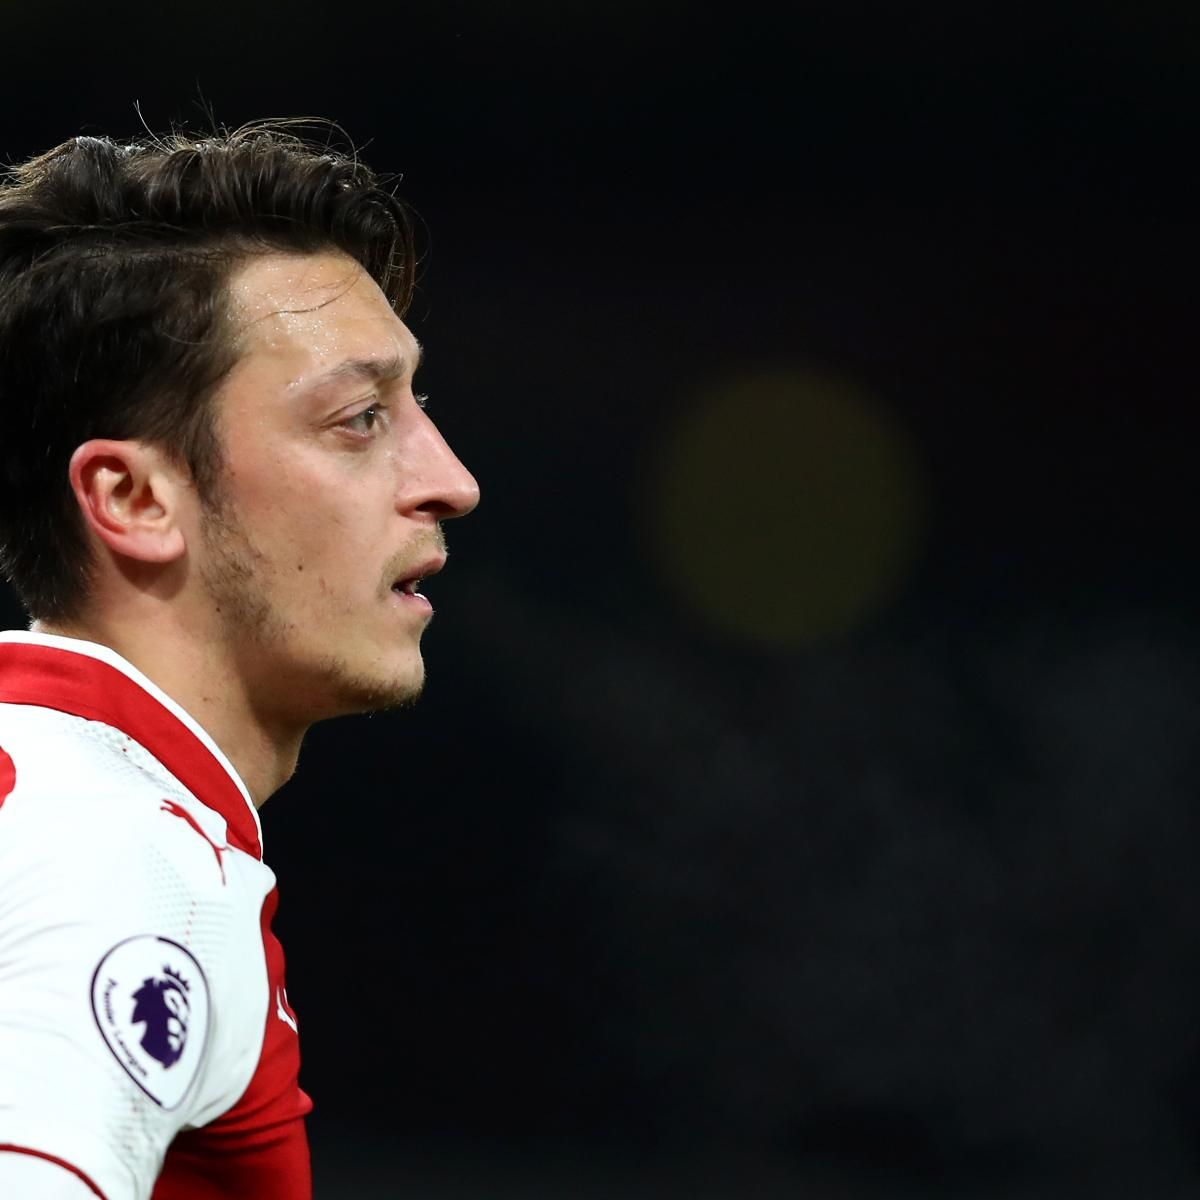 Mesut ozil transfer meeting with barcelona reportedly set